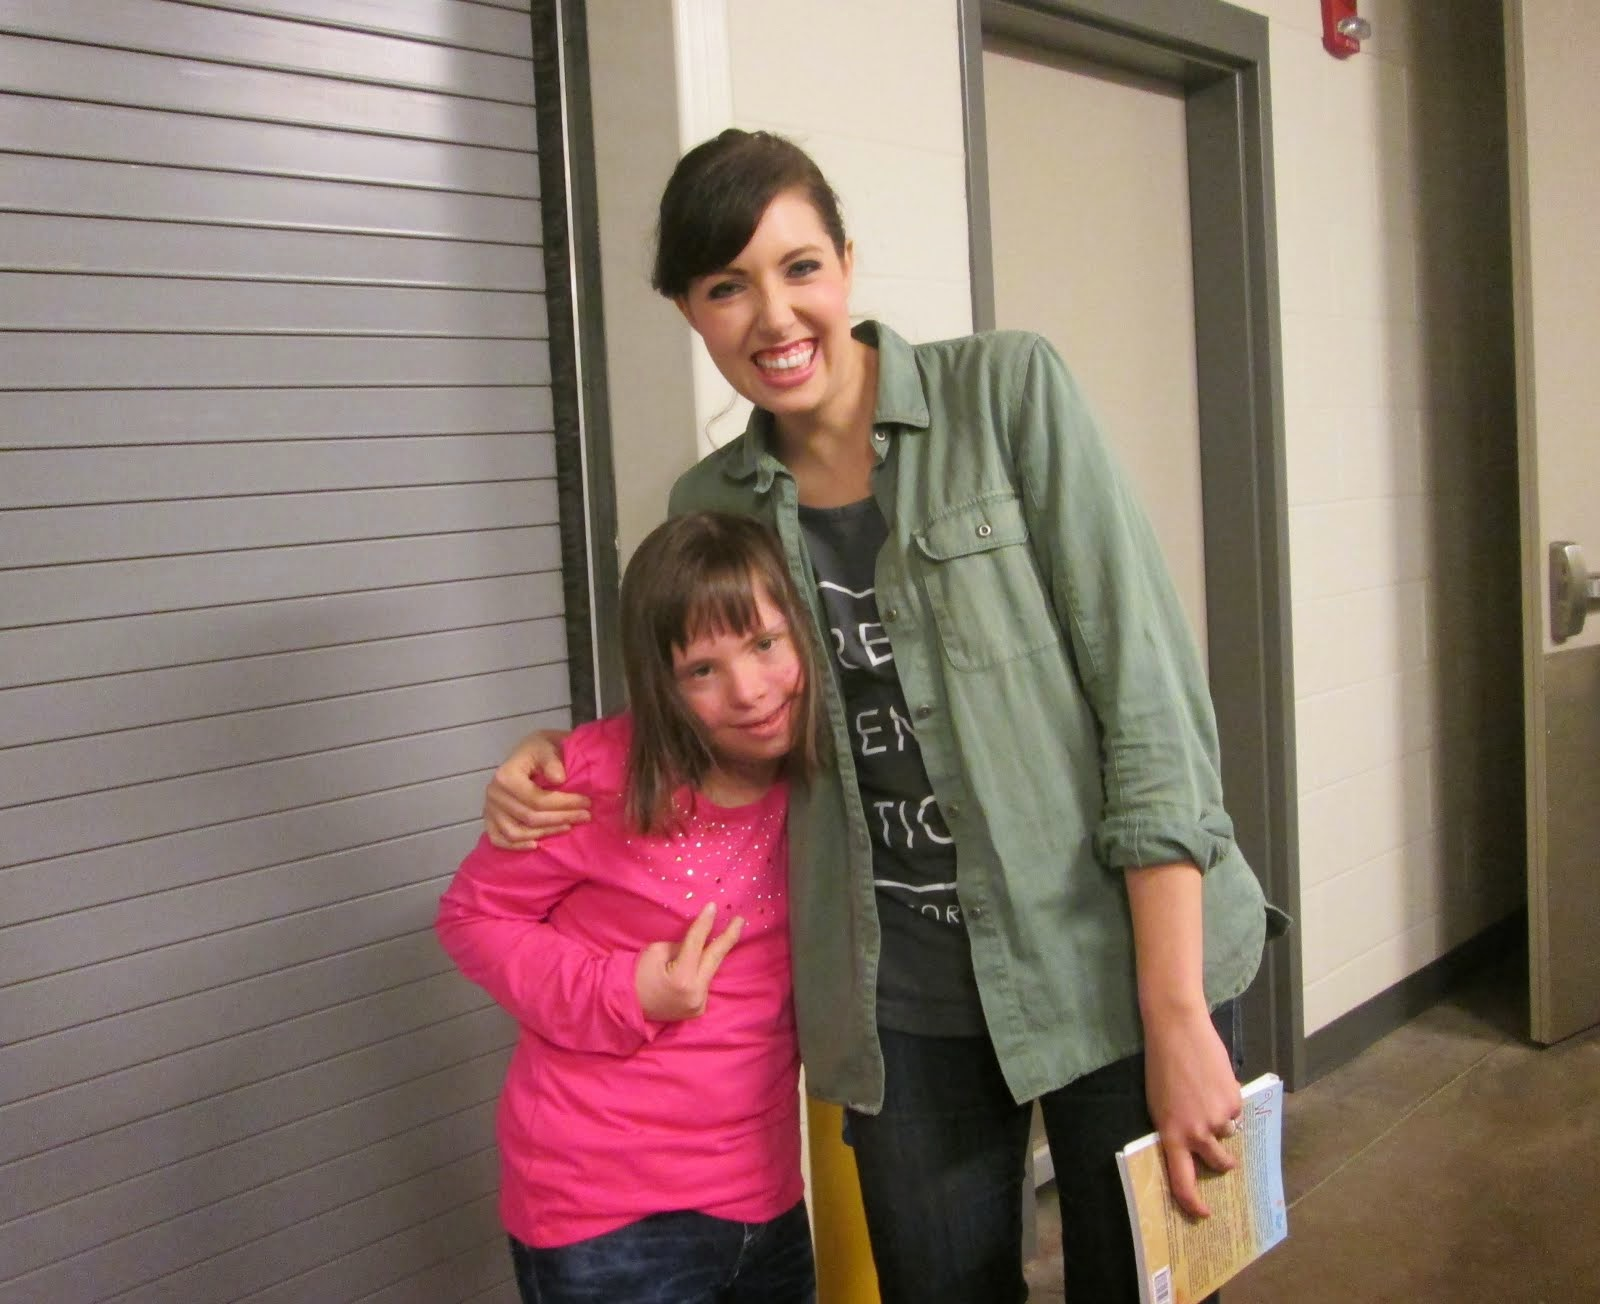 Chloe meets International Christian Recording Artist Francesca Battistelli